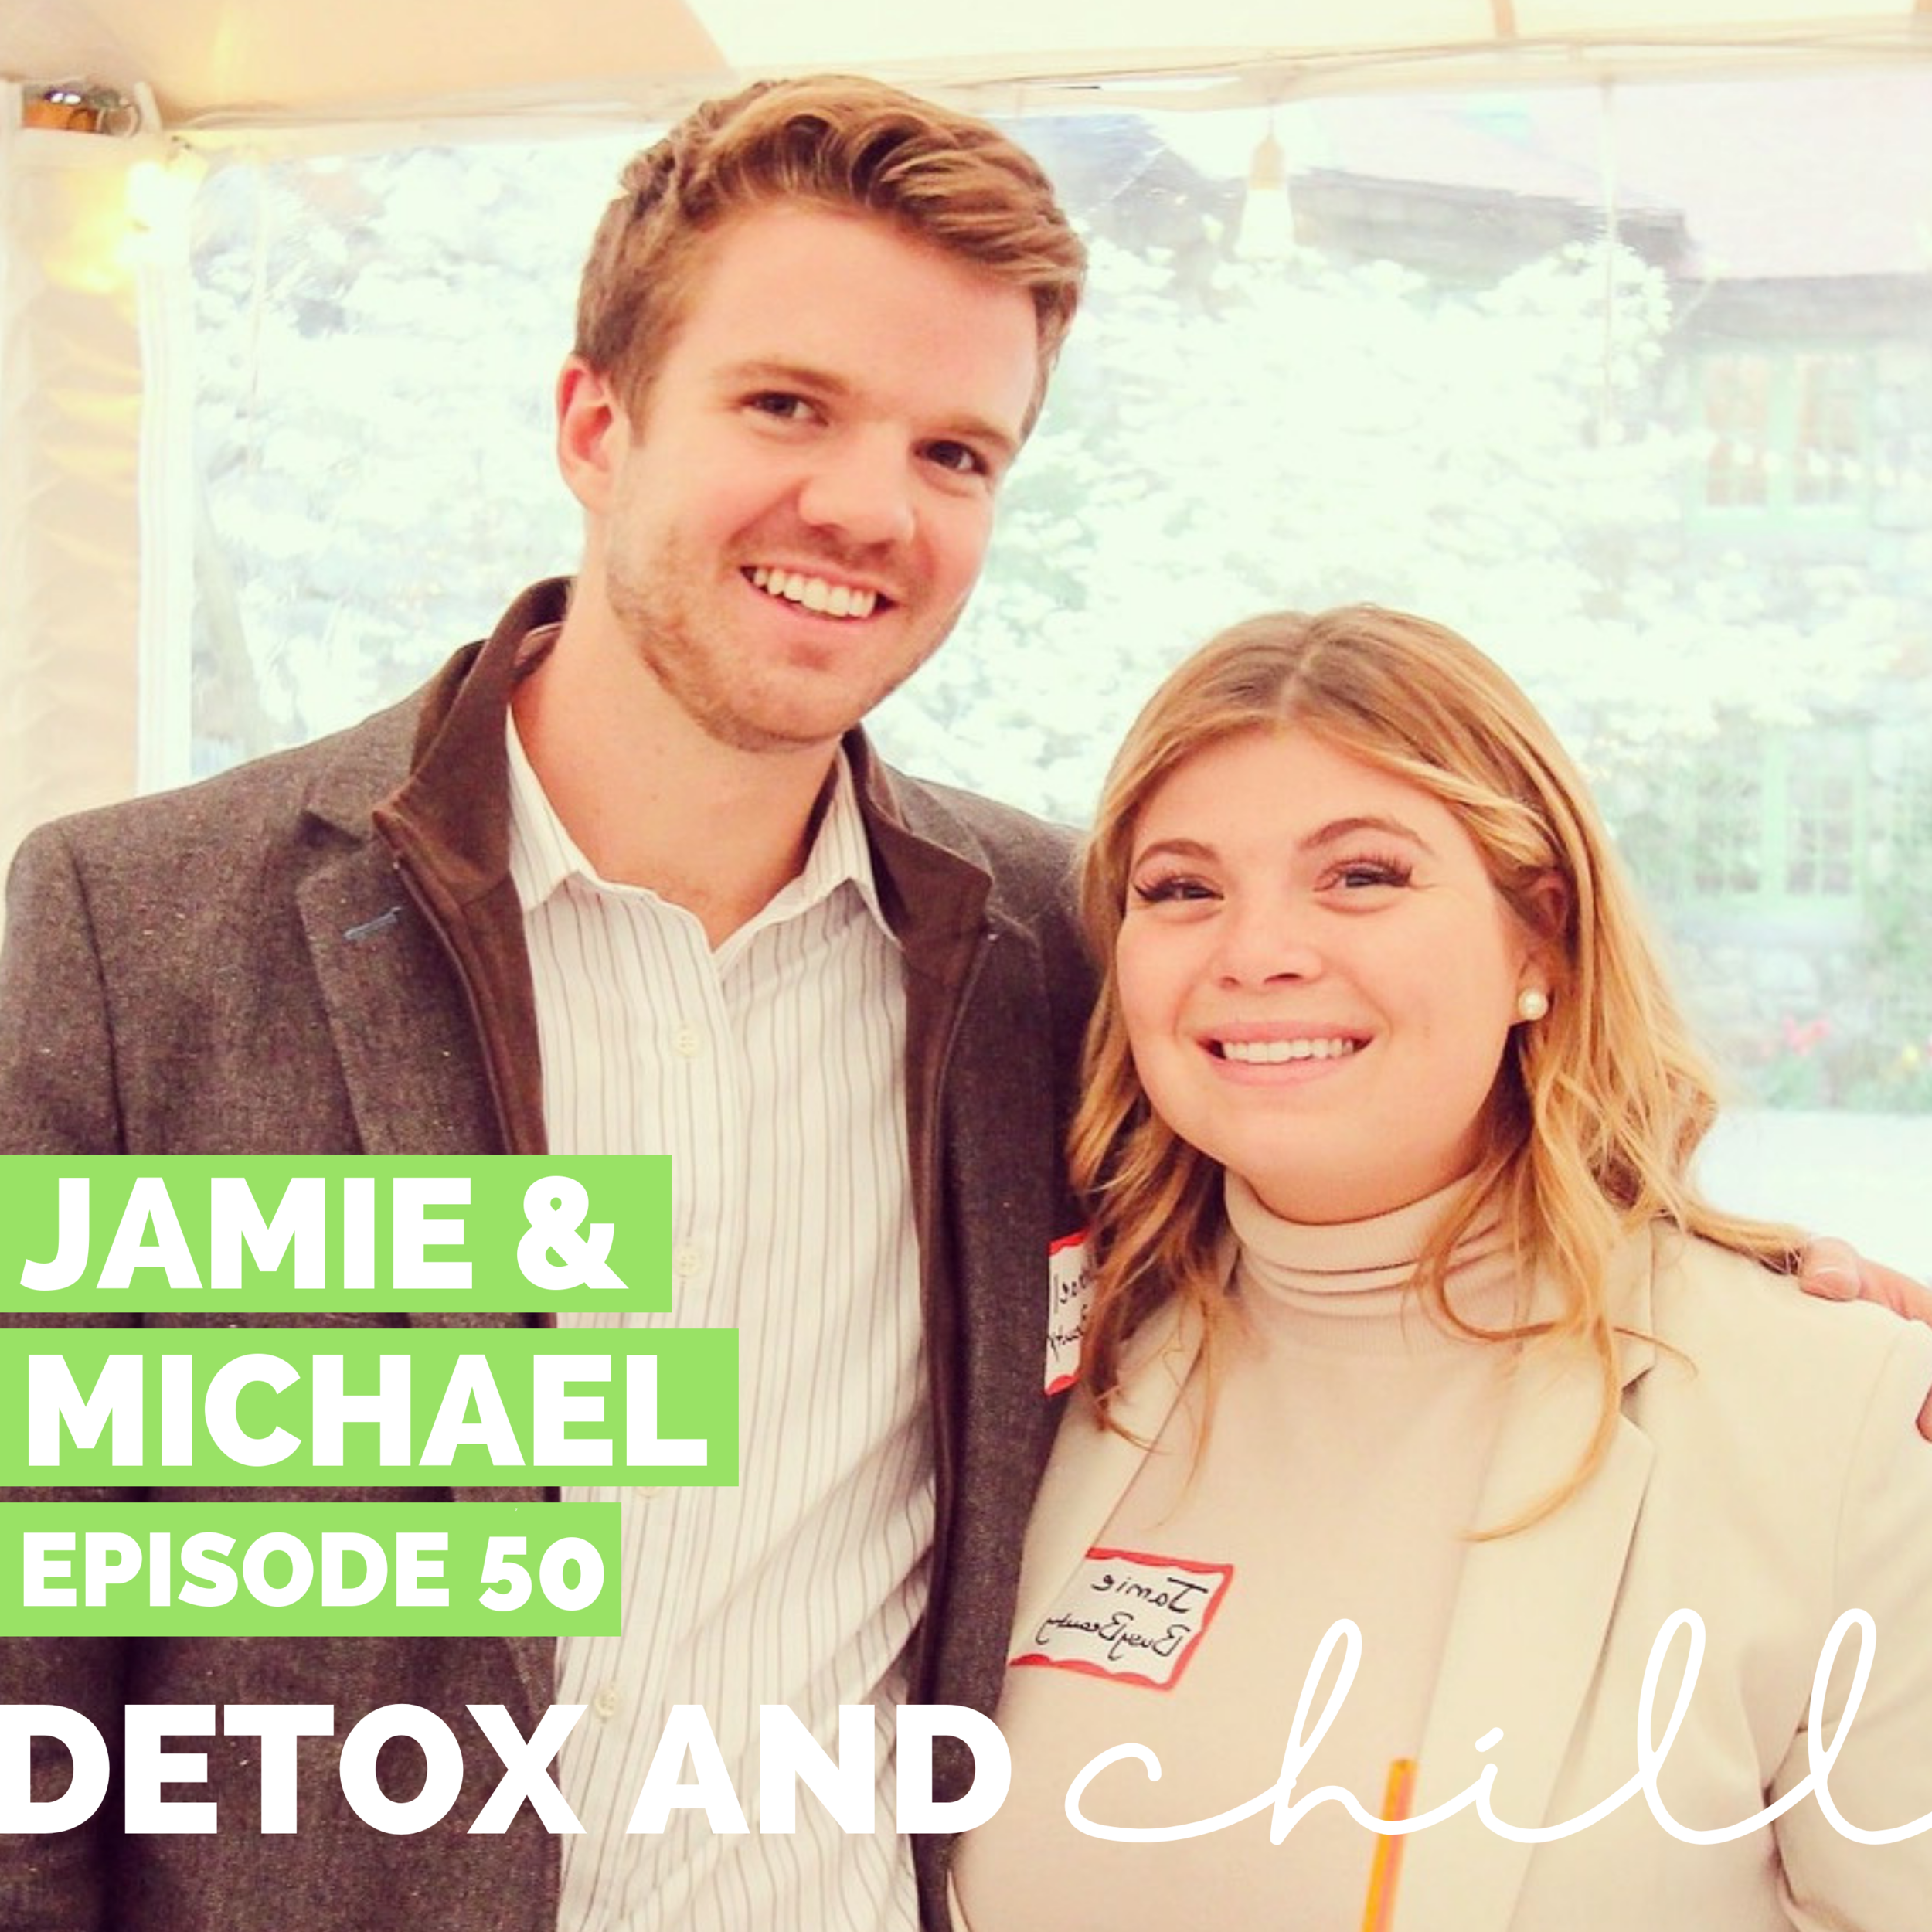 Episode #50: Jamie & Michael // Founders of Busy Beauty // Struggles and Successes as Entrepreneurs - Hi Detox & Chill squad! We hope you're having a marvelous start to your week.OMG, it's EPISODE #50!!!! How crazy is that??Today we have the founders of BusyBeauty on the pod — Jamie Steenbakkers & Michael Leahy. Alison (their marketing manager) also tagged along which made this recording a record for how many people participated!BusyBeauty is a wonderful brand for women on the go (which makes so much sense for our listeners!). After meeting in college, Jamie and Michael set out to solve the problem of long and involved beauty routines (and also shaving your legs in a dorm room). They created a waterless shave gel first and have since expanded their line to include wipes and showerless shampoo. Jamie is a beauty protege — the next generation inventor, the eye for design, the creator and the visionary. While Michael is a hustler — an expert at supply chain optimization, growth hacker, people, and cash flow manager.The team is based locally in Boston, and we get into some great topics like how to manage your finances starting out as an entrepreneur, their biggest struggles, and their biggest successes.Find BusyBeauty HERE and on Instagram HERE.Seriously, can't wait for you guys to hear this one and what our reading told us about the podcast moving forward (spoiler alert - we're super inspired!)We are so proud and excited about this episode and are so excited to hear what you think - let's start normalizing these conversations together. We'd love to continue this conversation in our Facebook group and on Instagram. Our Facebook group is a safe space for anyone who joins, so don't forget to check us out there. Just search *SUPER EXLUSIVE* Detox & Chill Podcast Group. As always, don't forget to follow along with us on Instagram (@detoxandchillpodcast) and join our Facebook group. We love you!Xoxo,Meg & BeckP.S. If you want to listen to Tara Foley's episode (who also went 